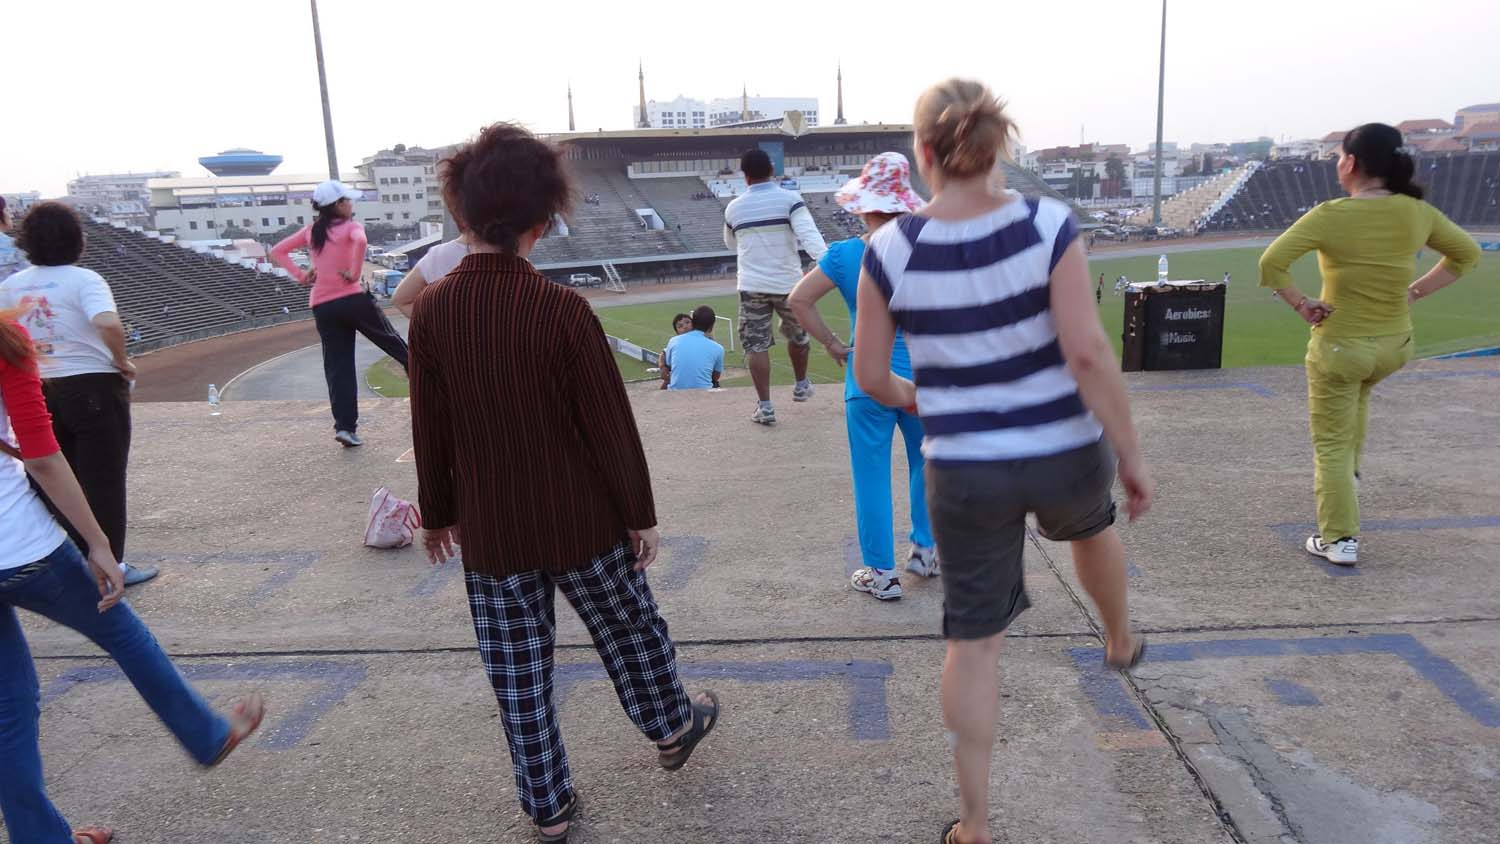 aerobics in the cool evening breeze (in thongs!)